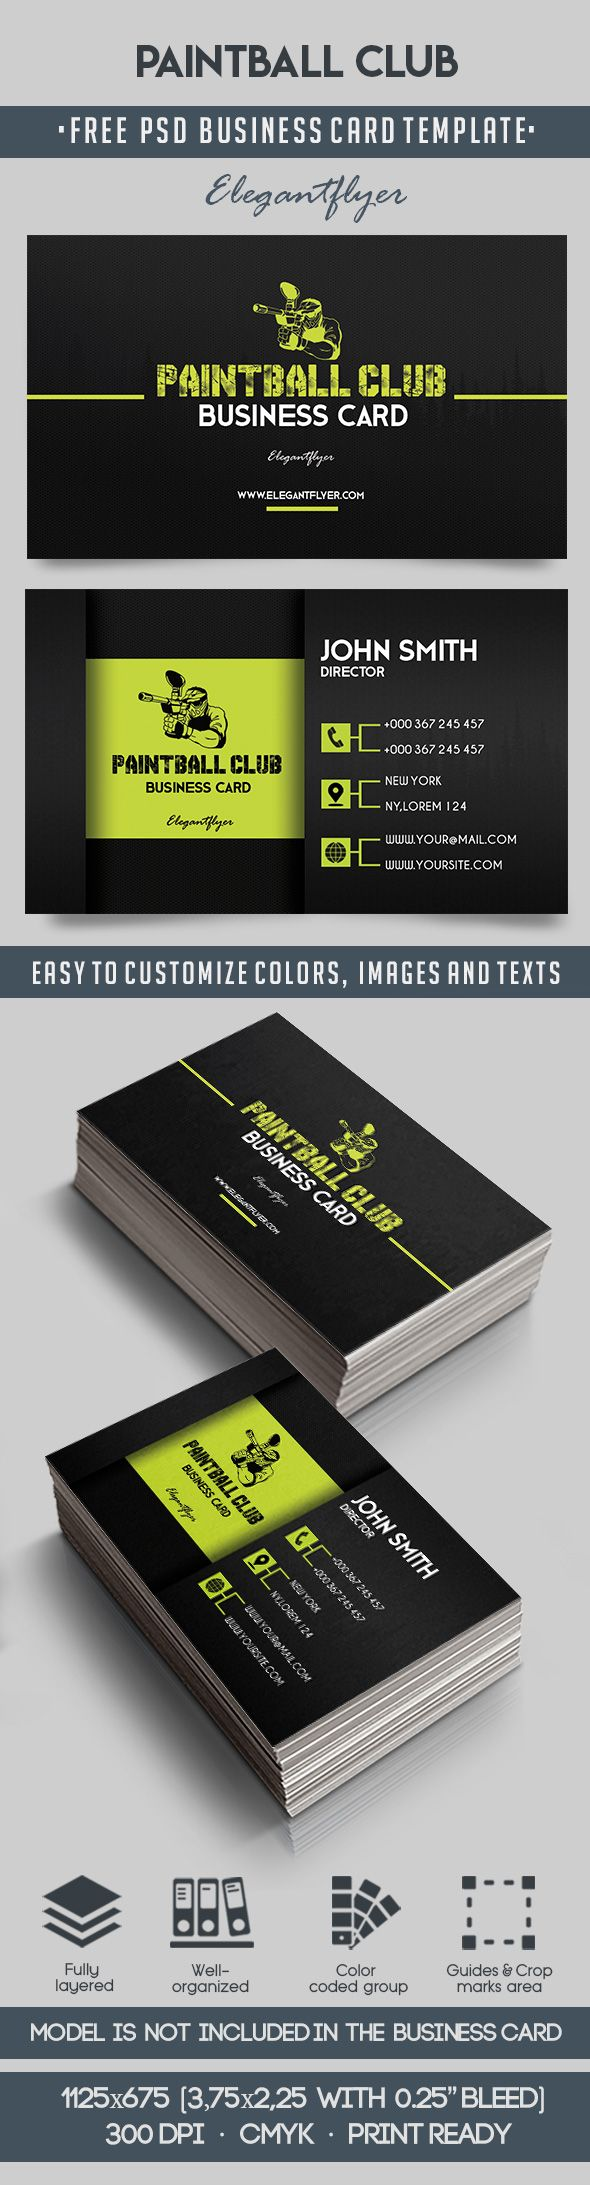 Paintball Club – Free Business Card Templates PSD